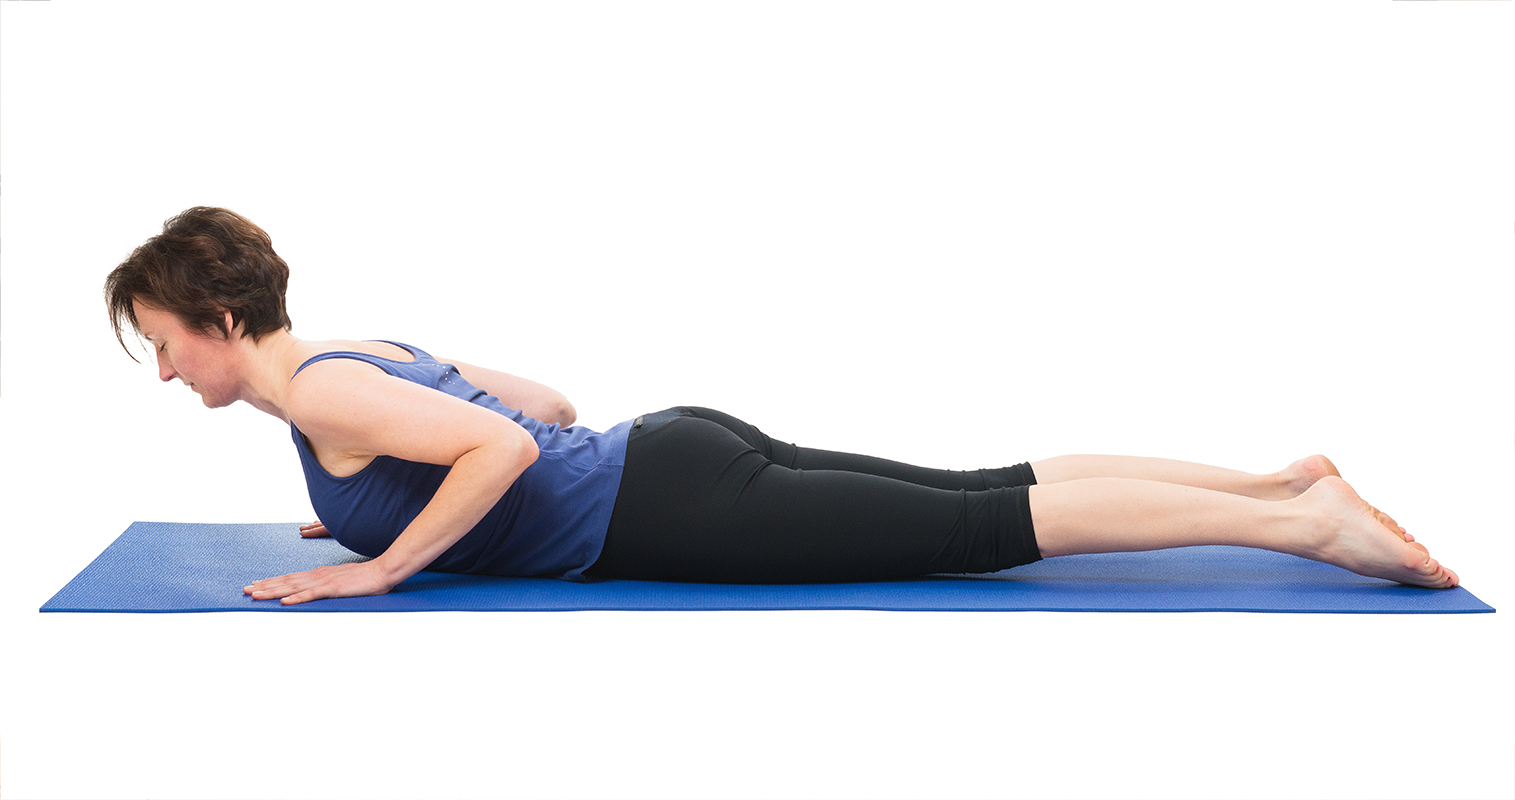 Rounded upper back and shoulders? How to look after your posture